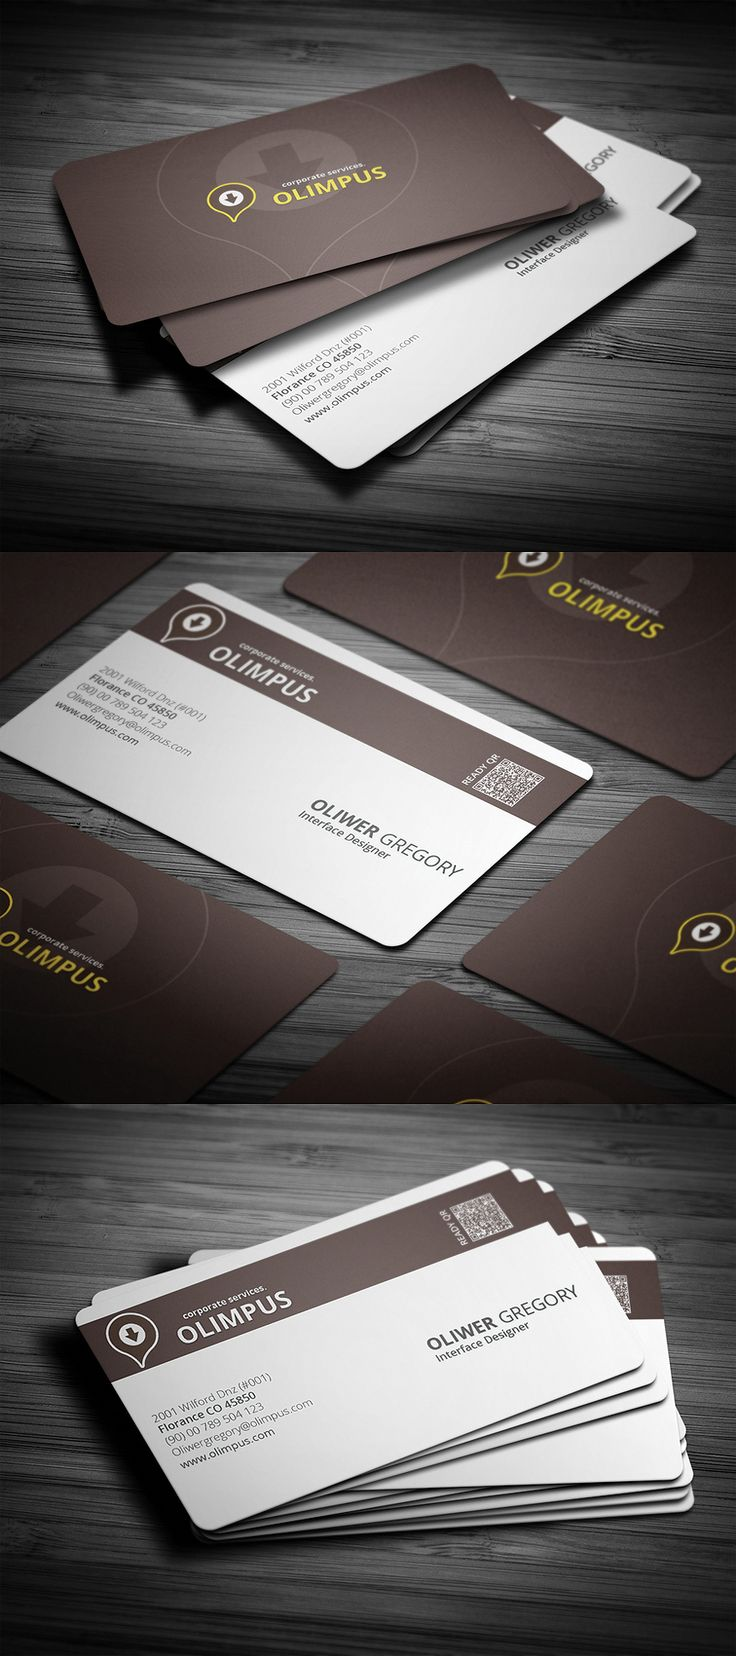 24 best Business Cards images on Pinterest | Business cards ...